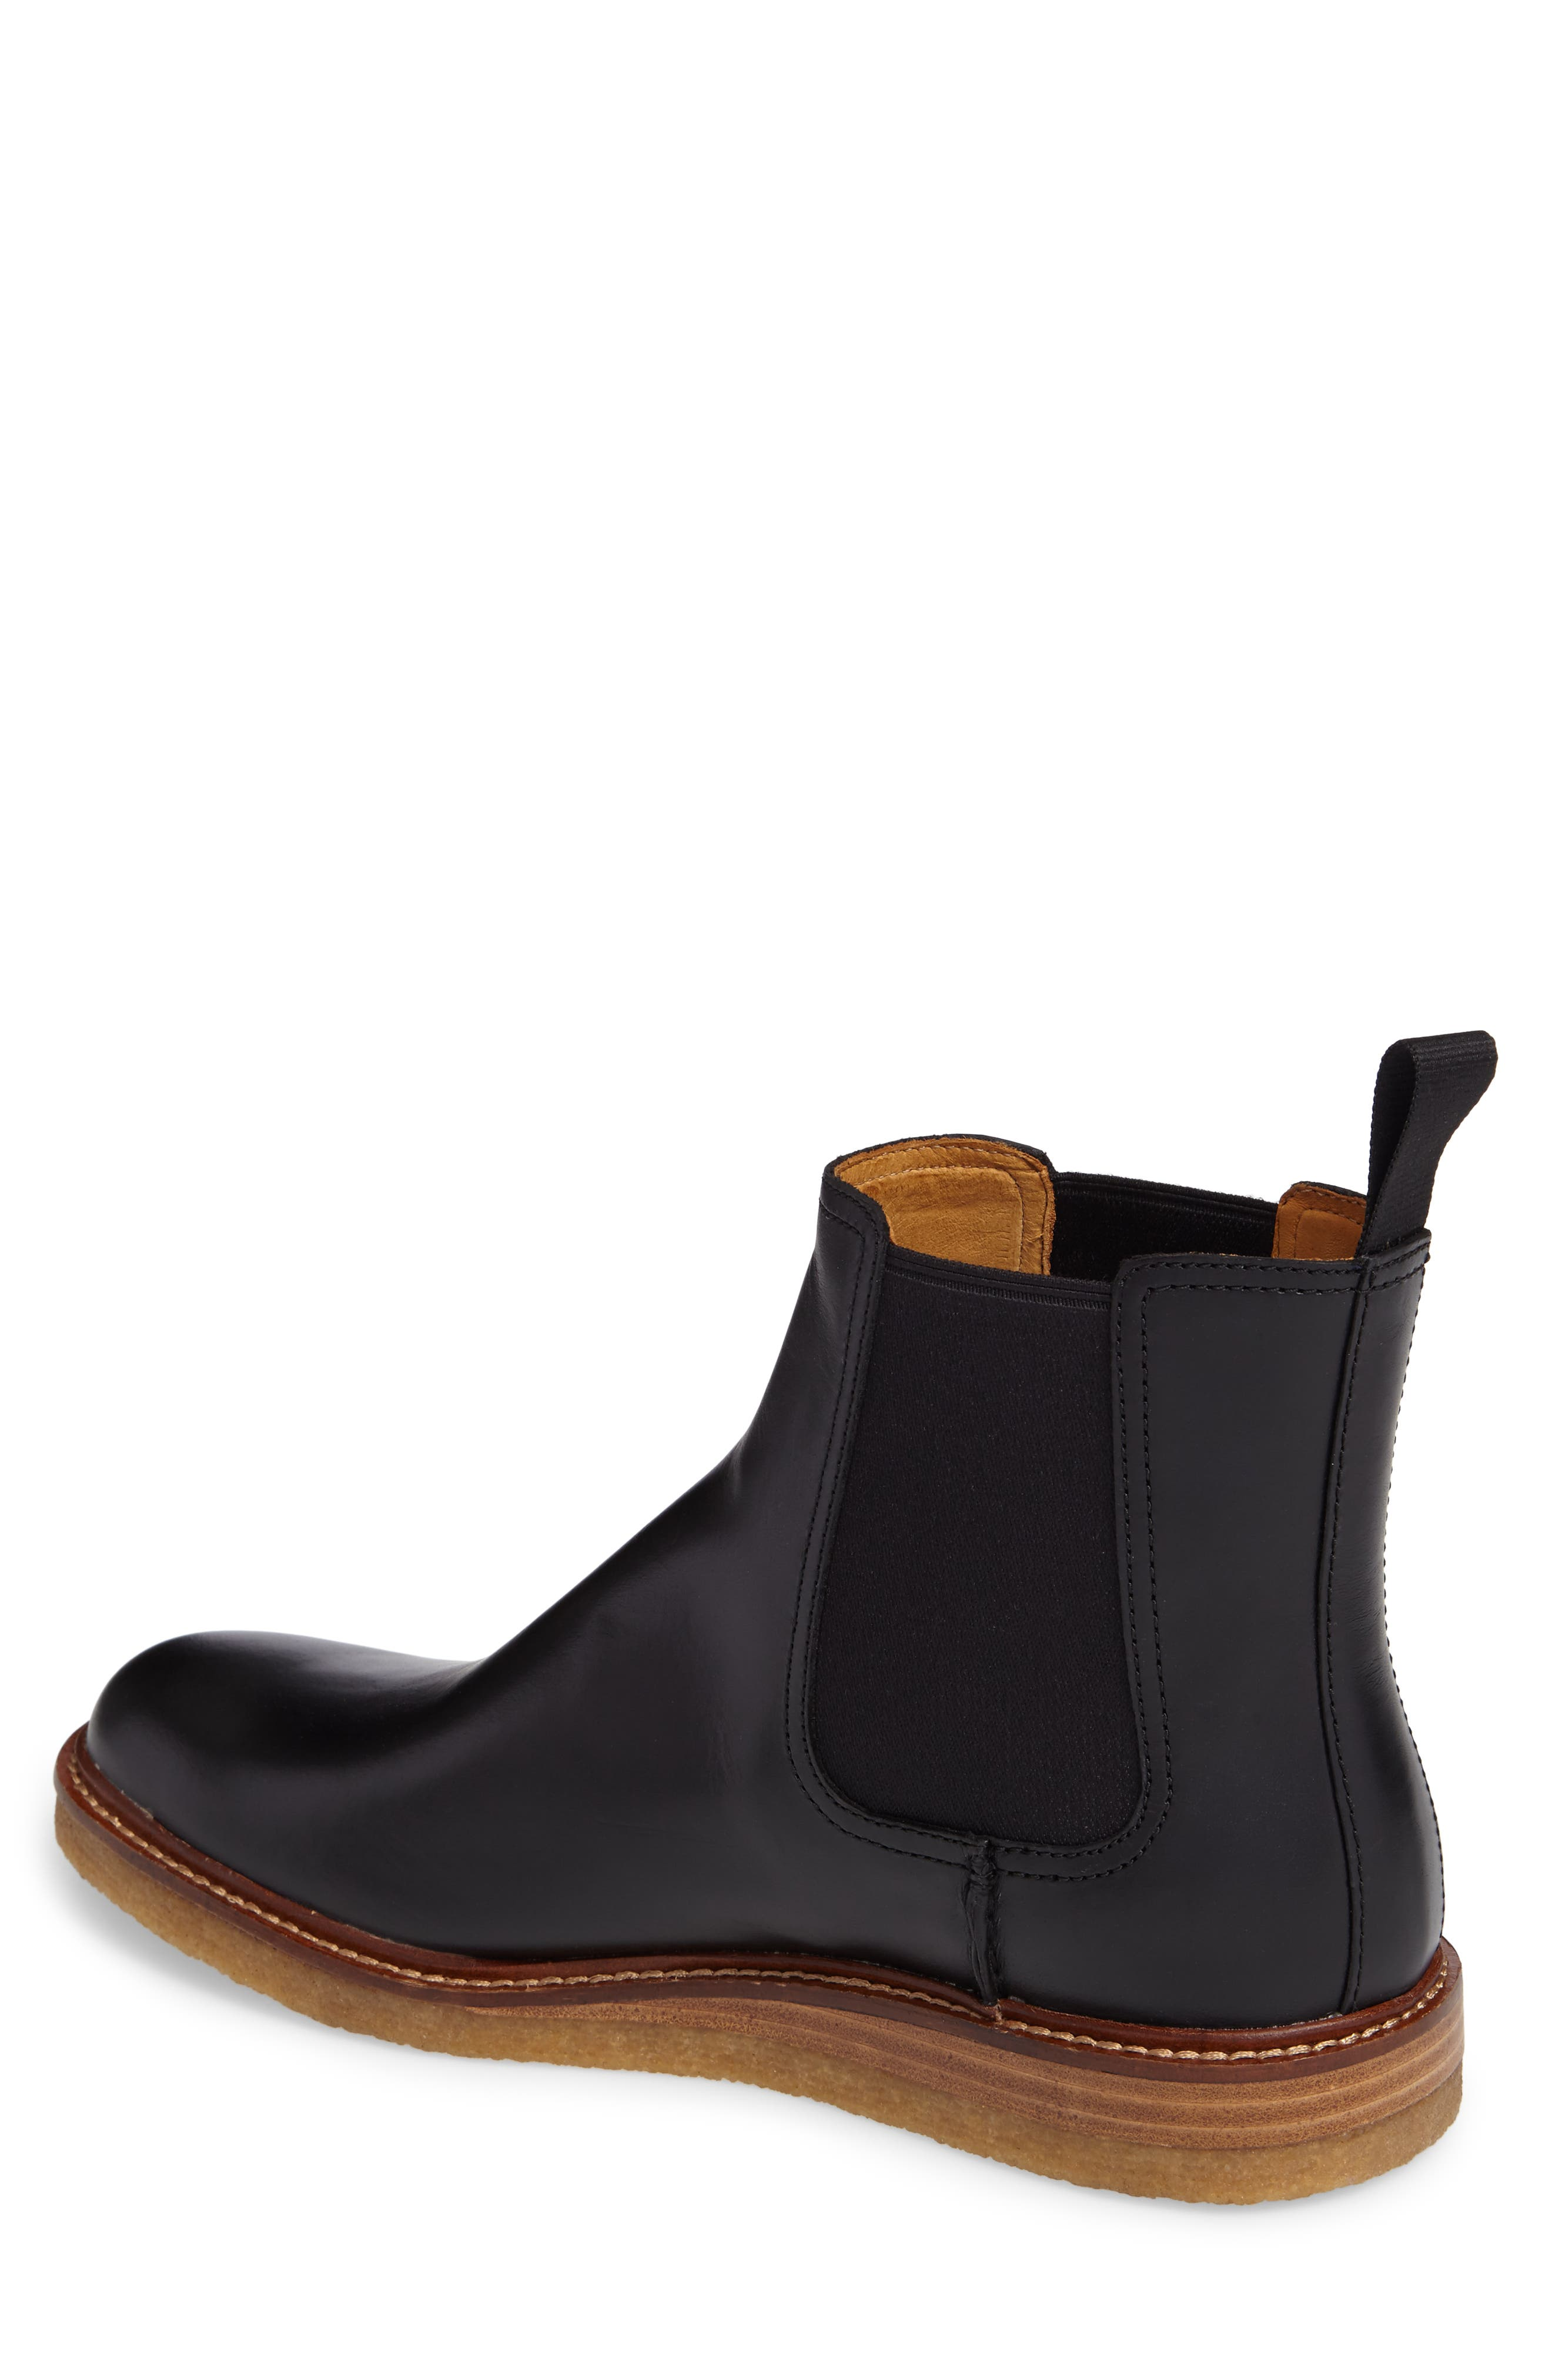 Leather Chelsea Boot,                             Alternate thumbnail 2, color,                             001